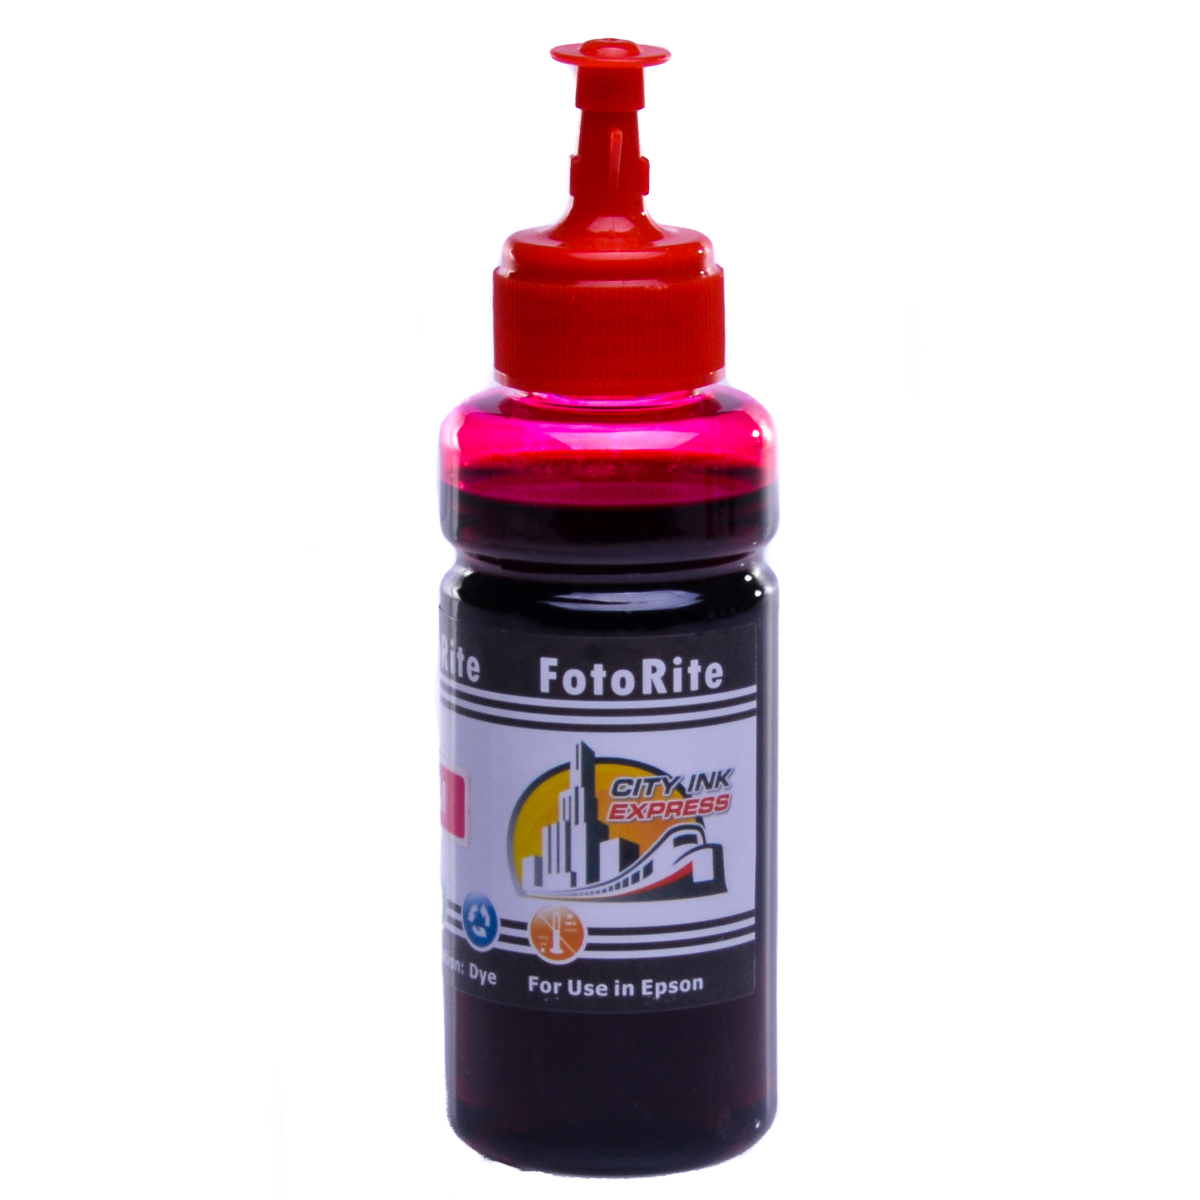 Cheap Magenta dye ink replaces Epson WF-7610DWF - T2703